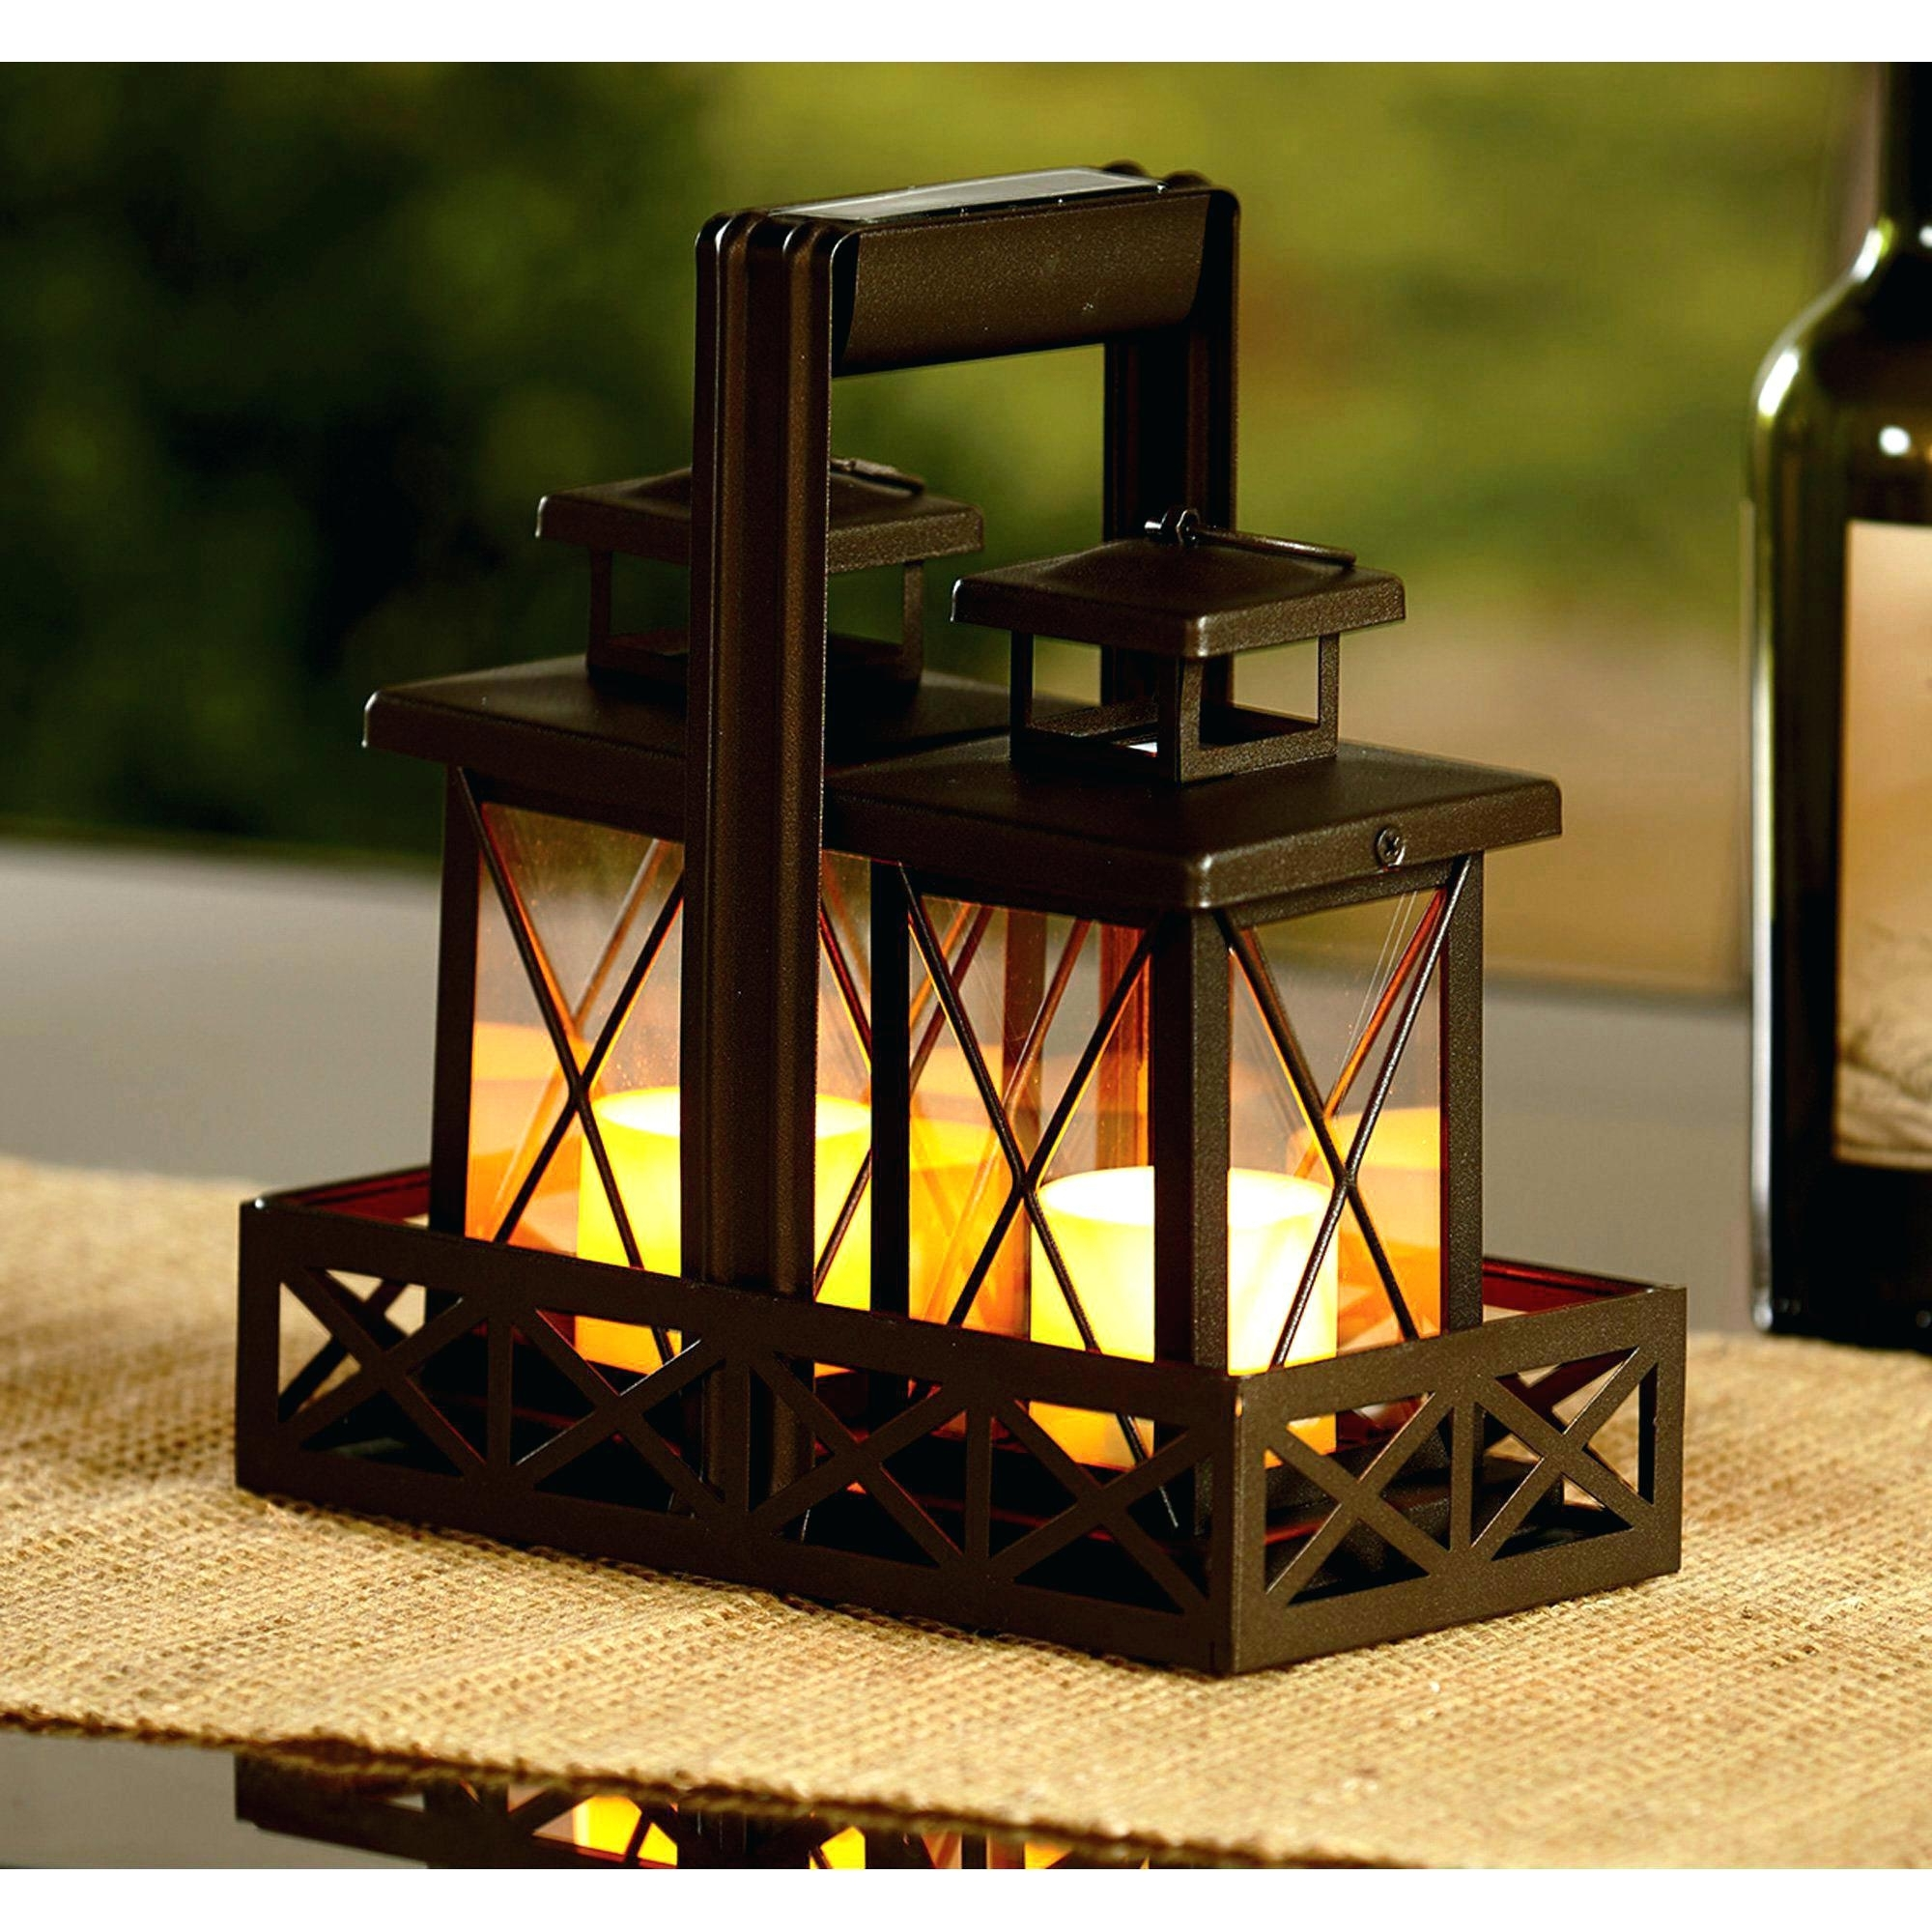 Preferred Outdoor Oil Lamps For Patio Table Sale – Pocketworldcupschedule Inside Outdoor Oil Lanterns For Patio (View 19 of 20)